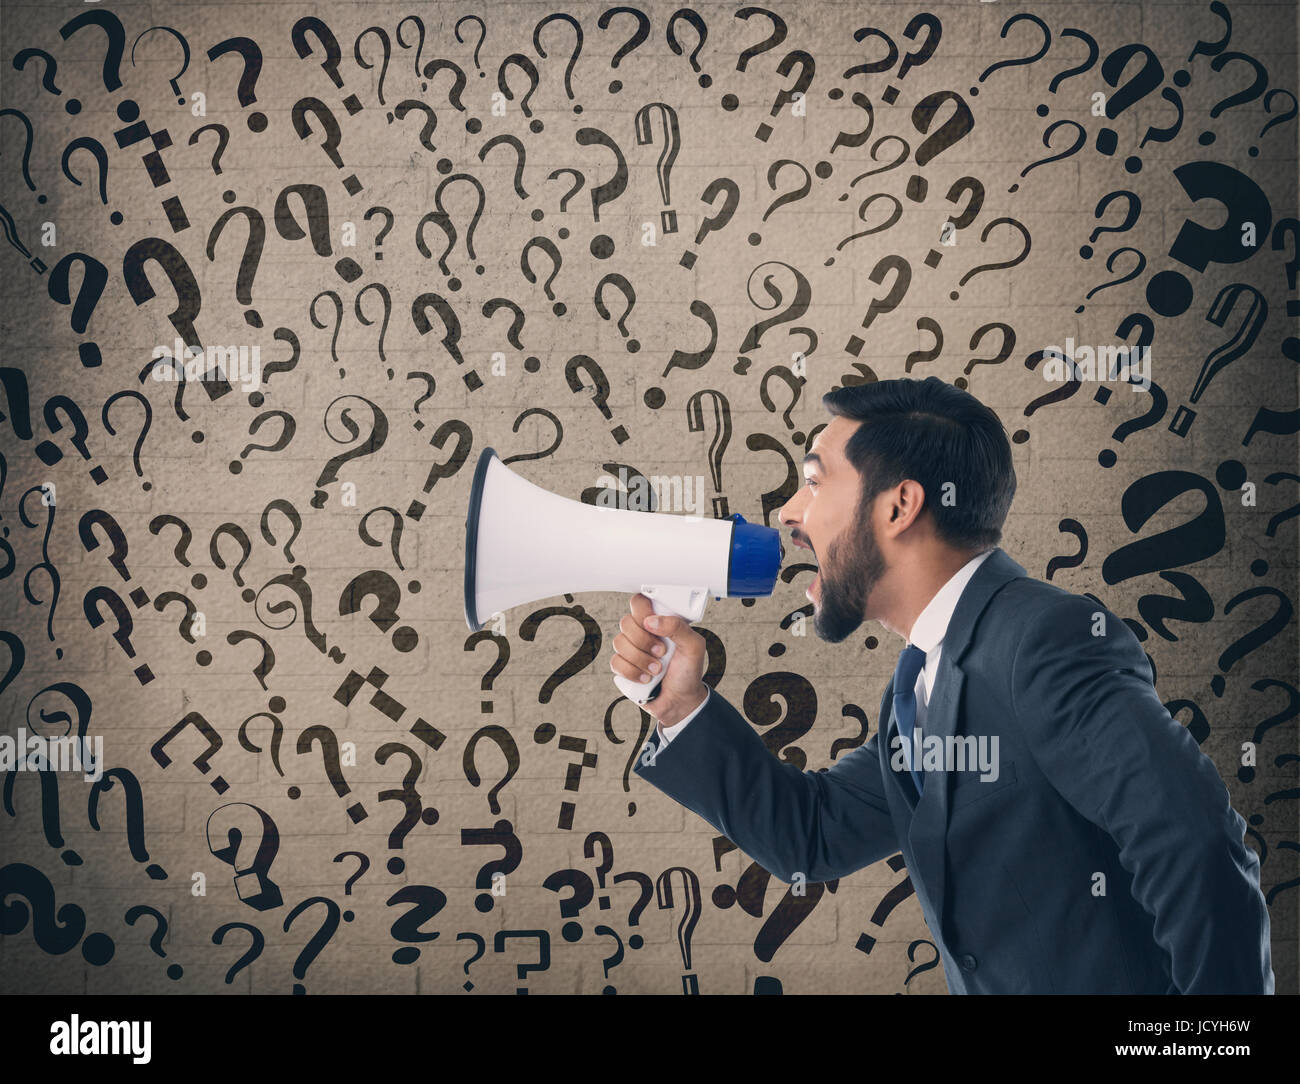 Businessman shouting on megaphone - Stock Image